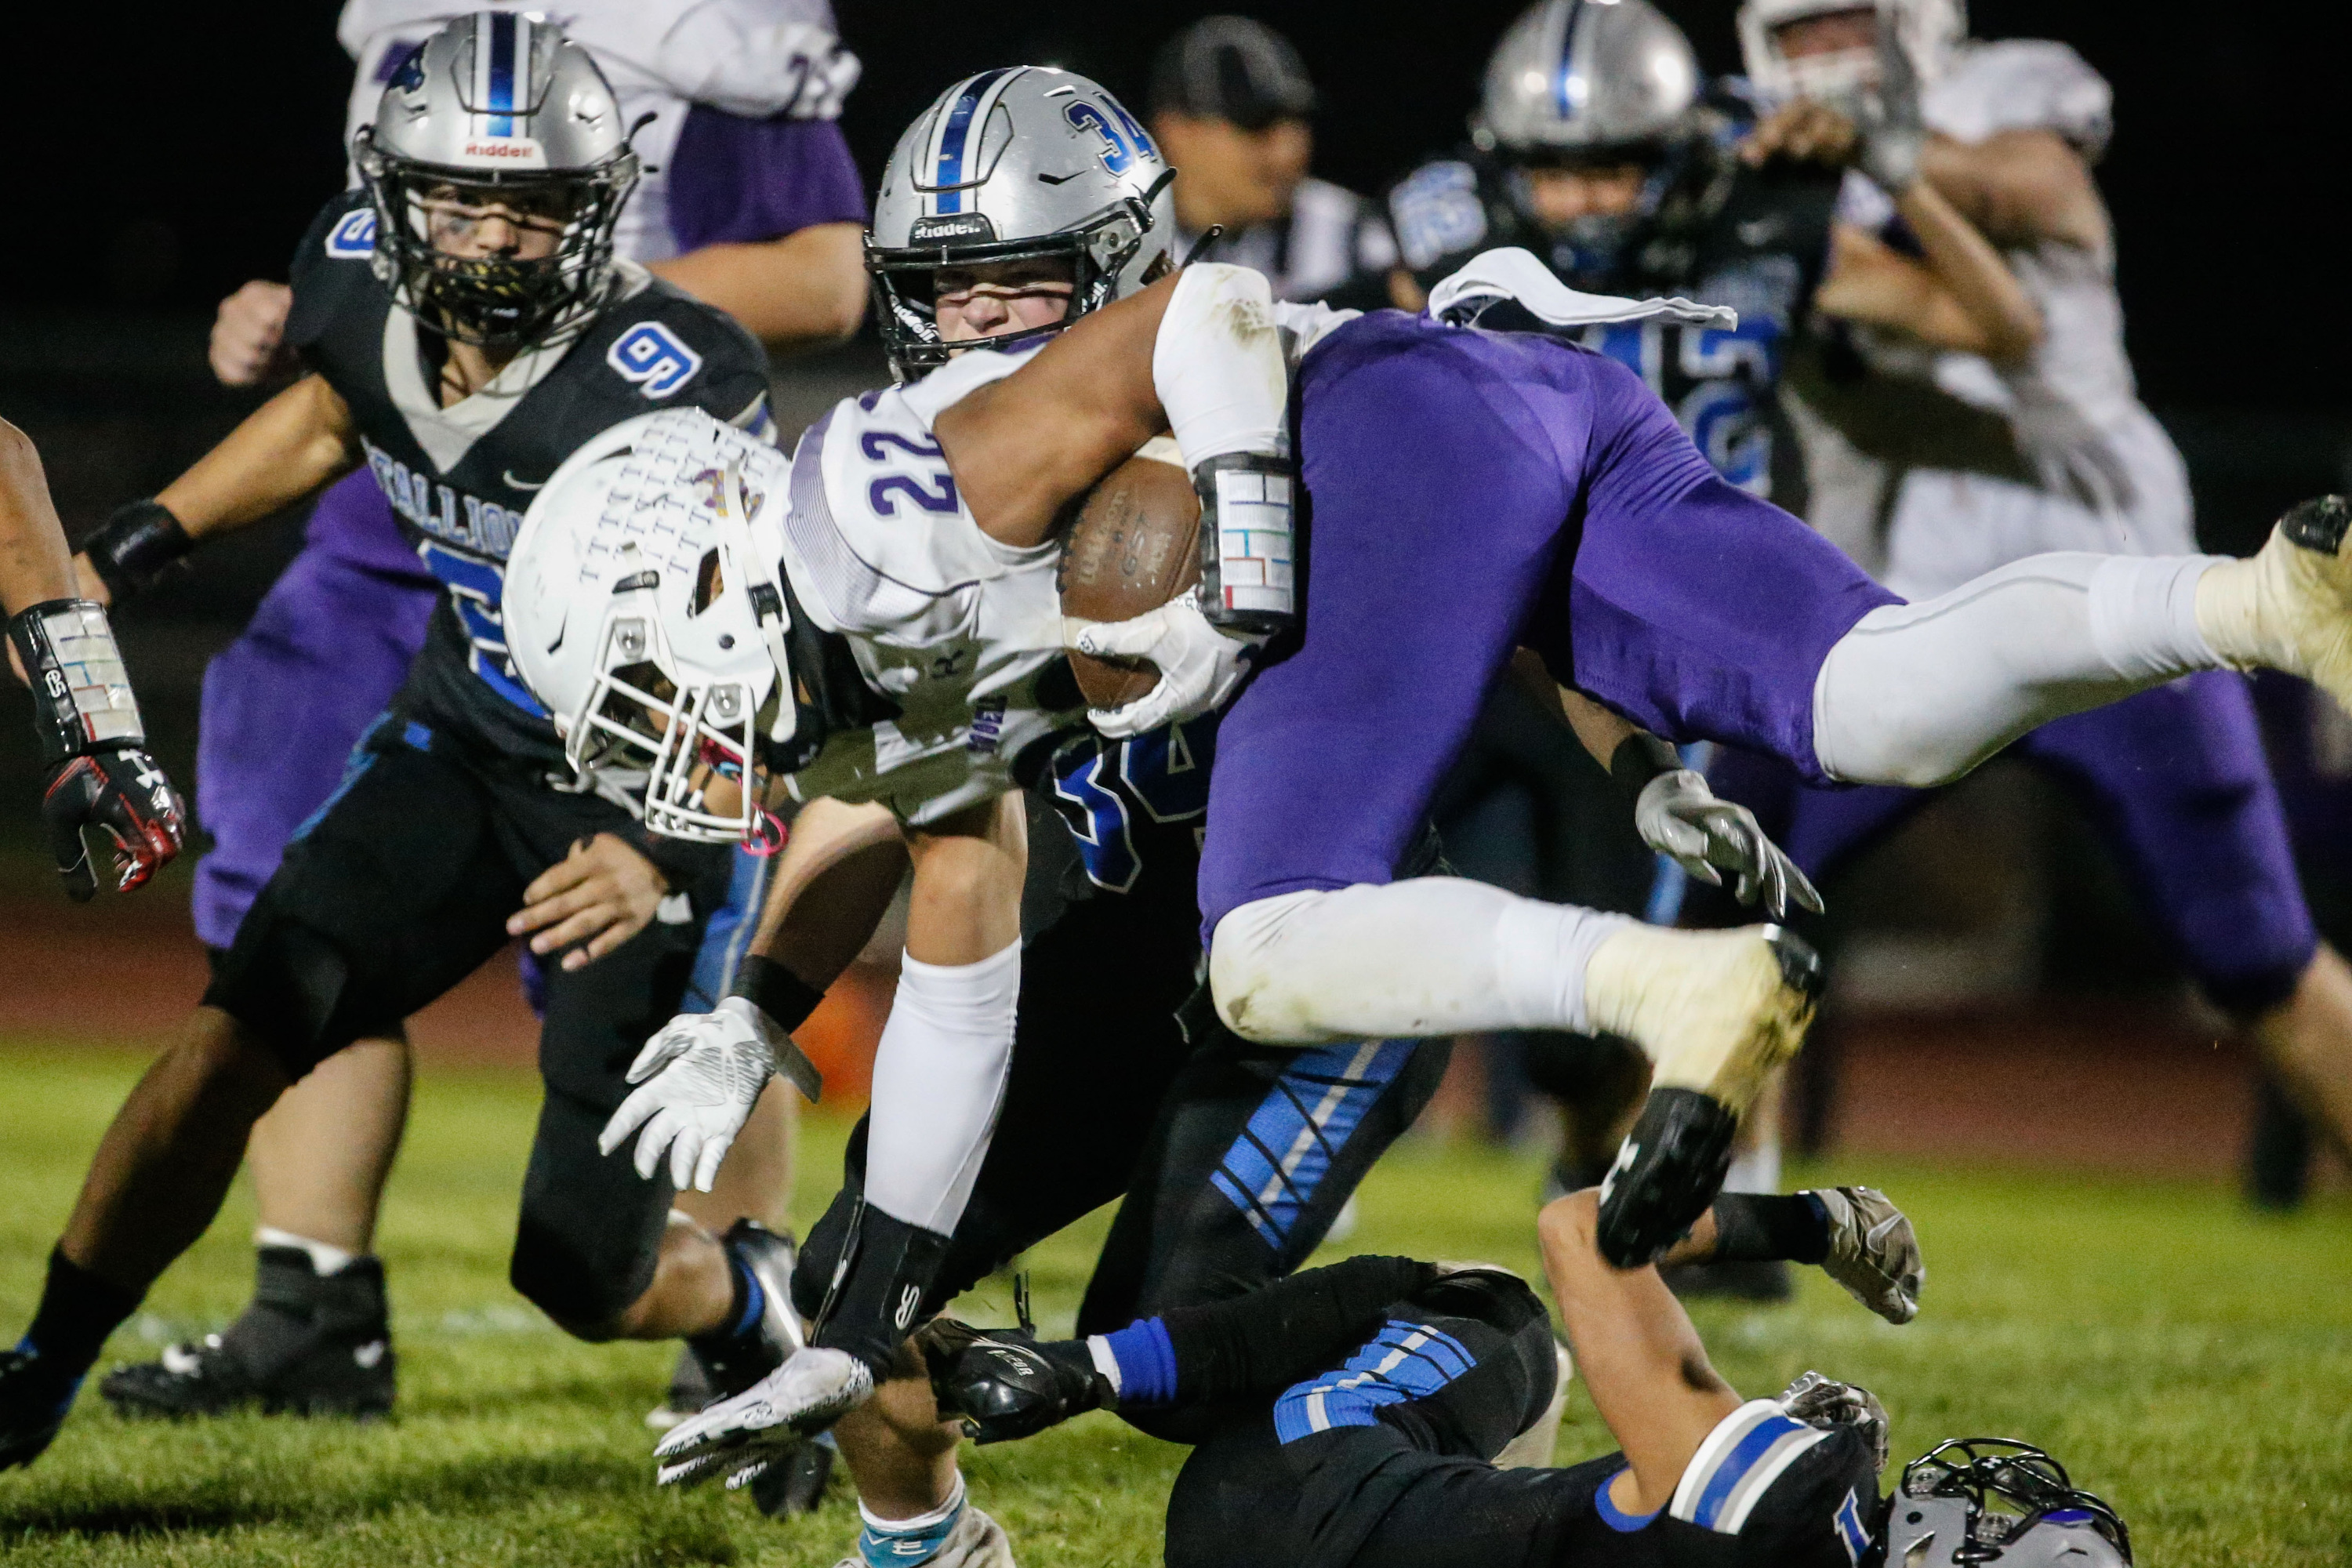 Tooele's Mapa Vaenuku (22) dives while getting pressured by Stansbury's defense during a high school football gameat Stansbury High School in Stansbury Park on Friday, Sept. 17, 2021.